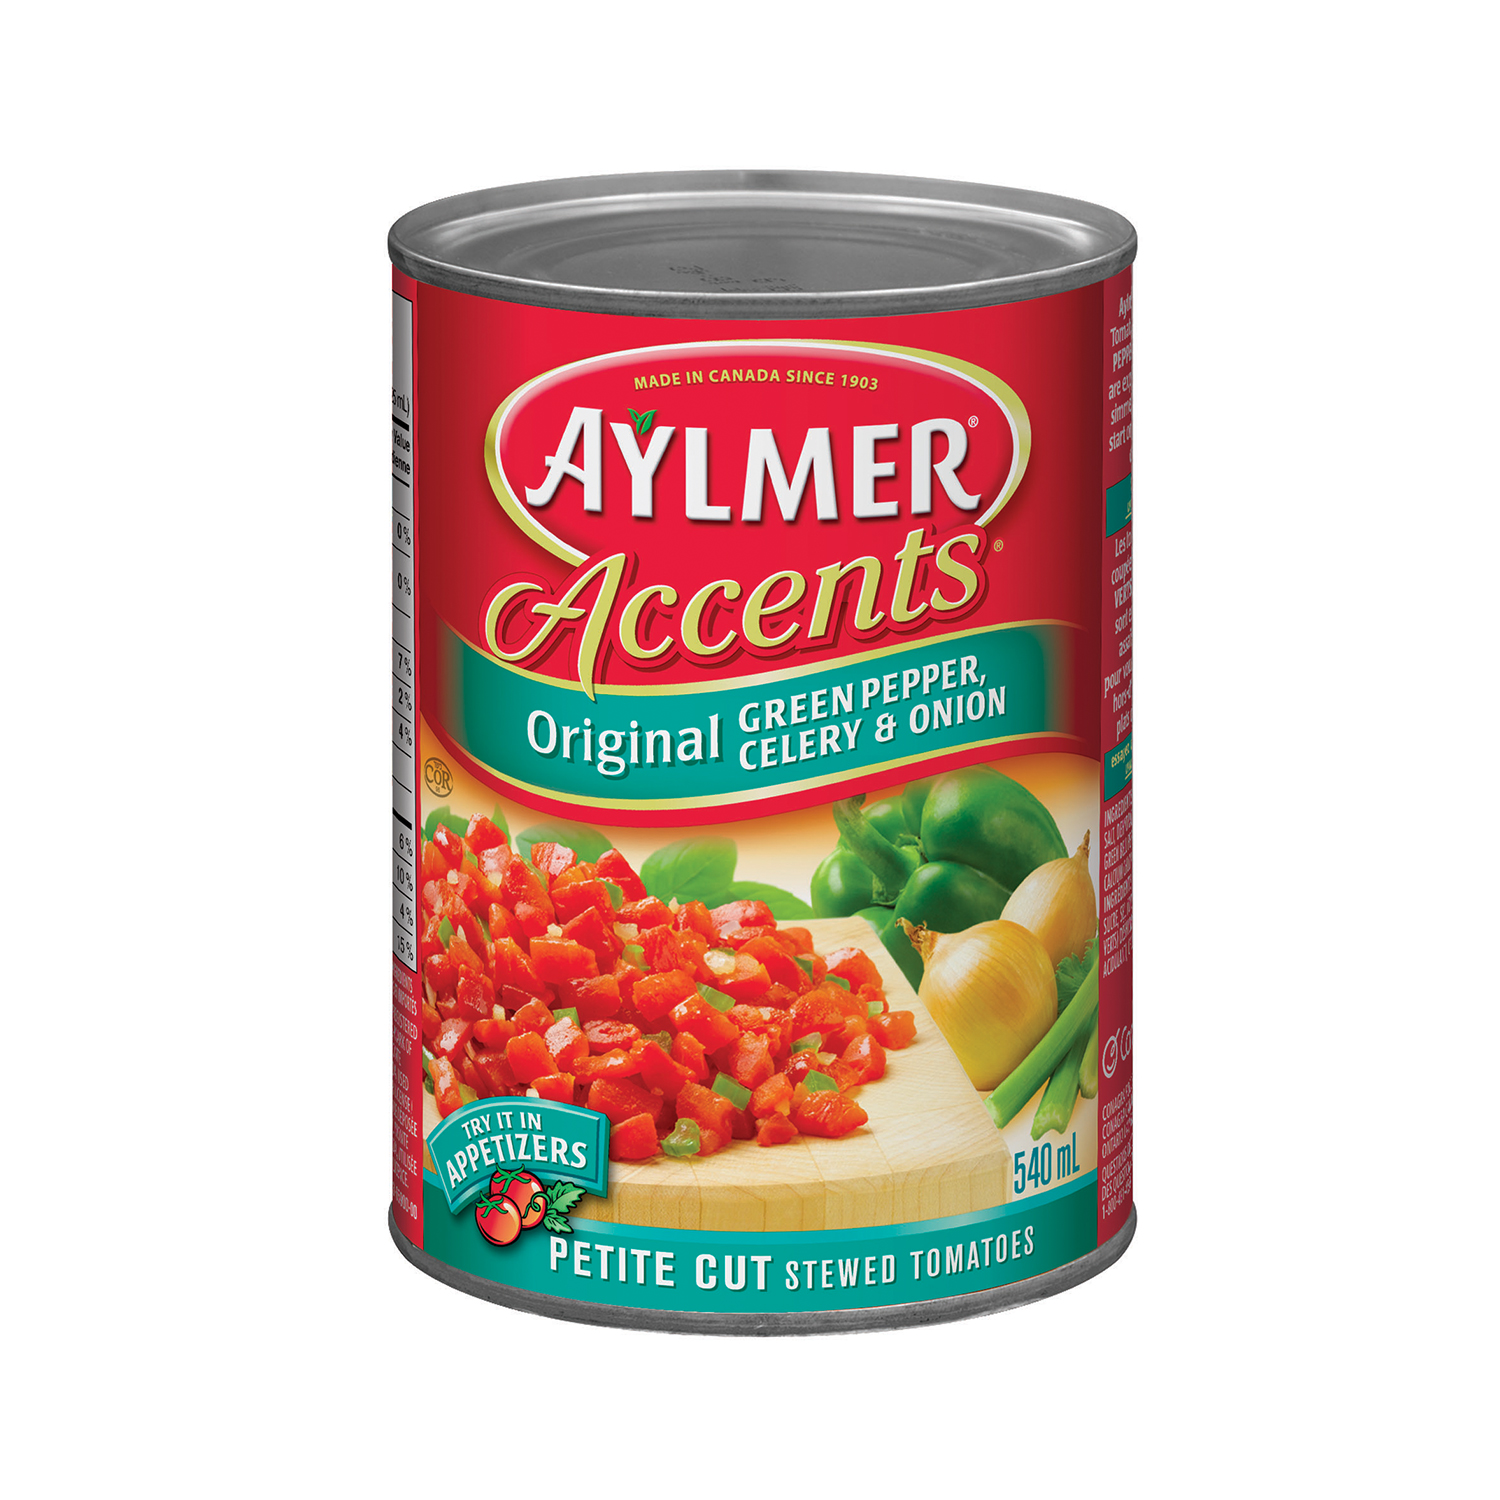 Aylmer Accents Petite Cut Original Stewed